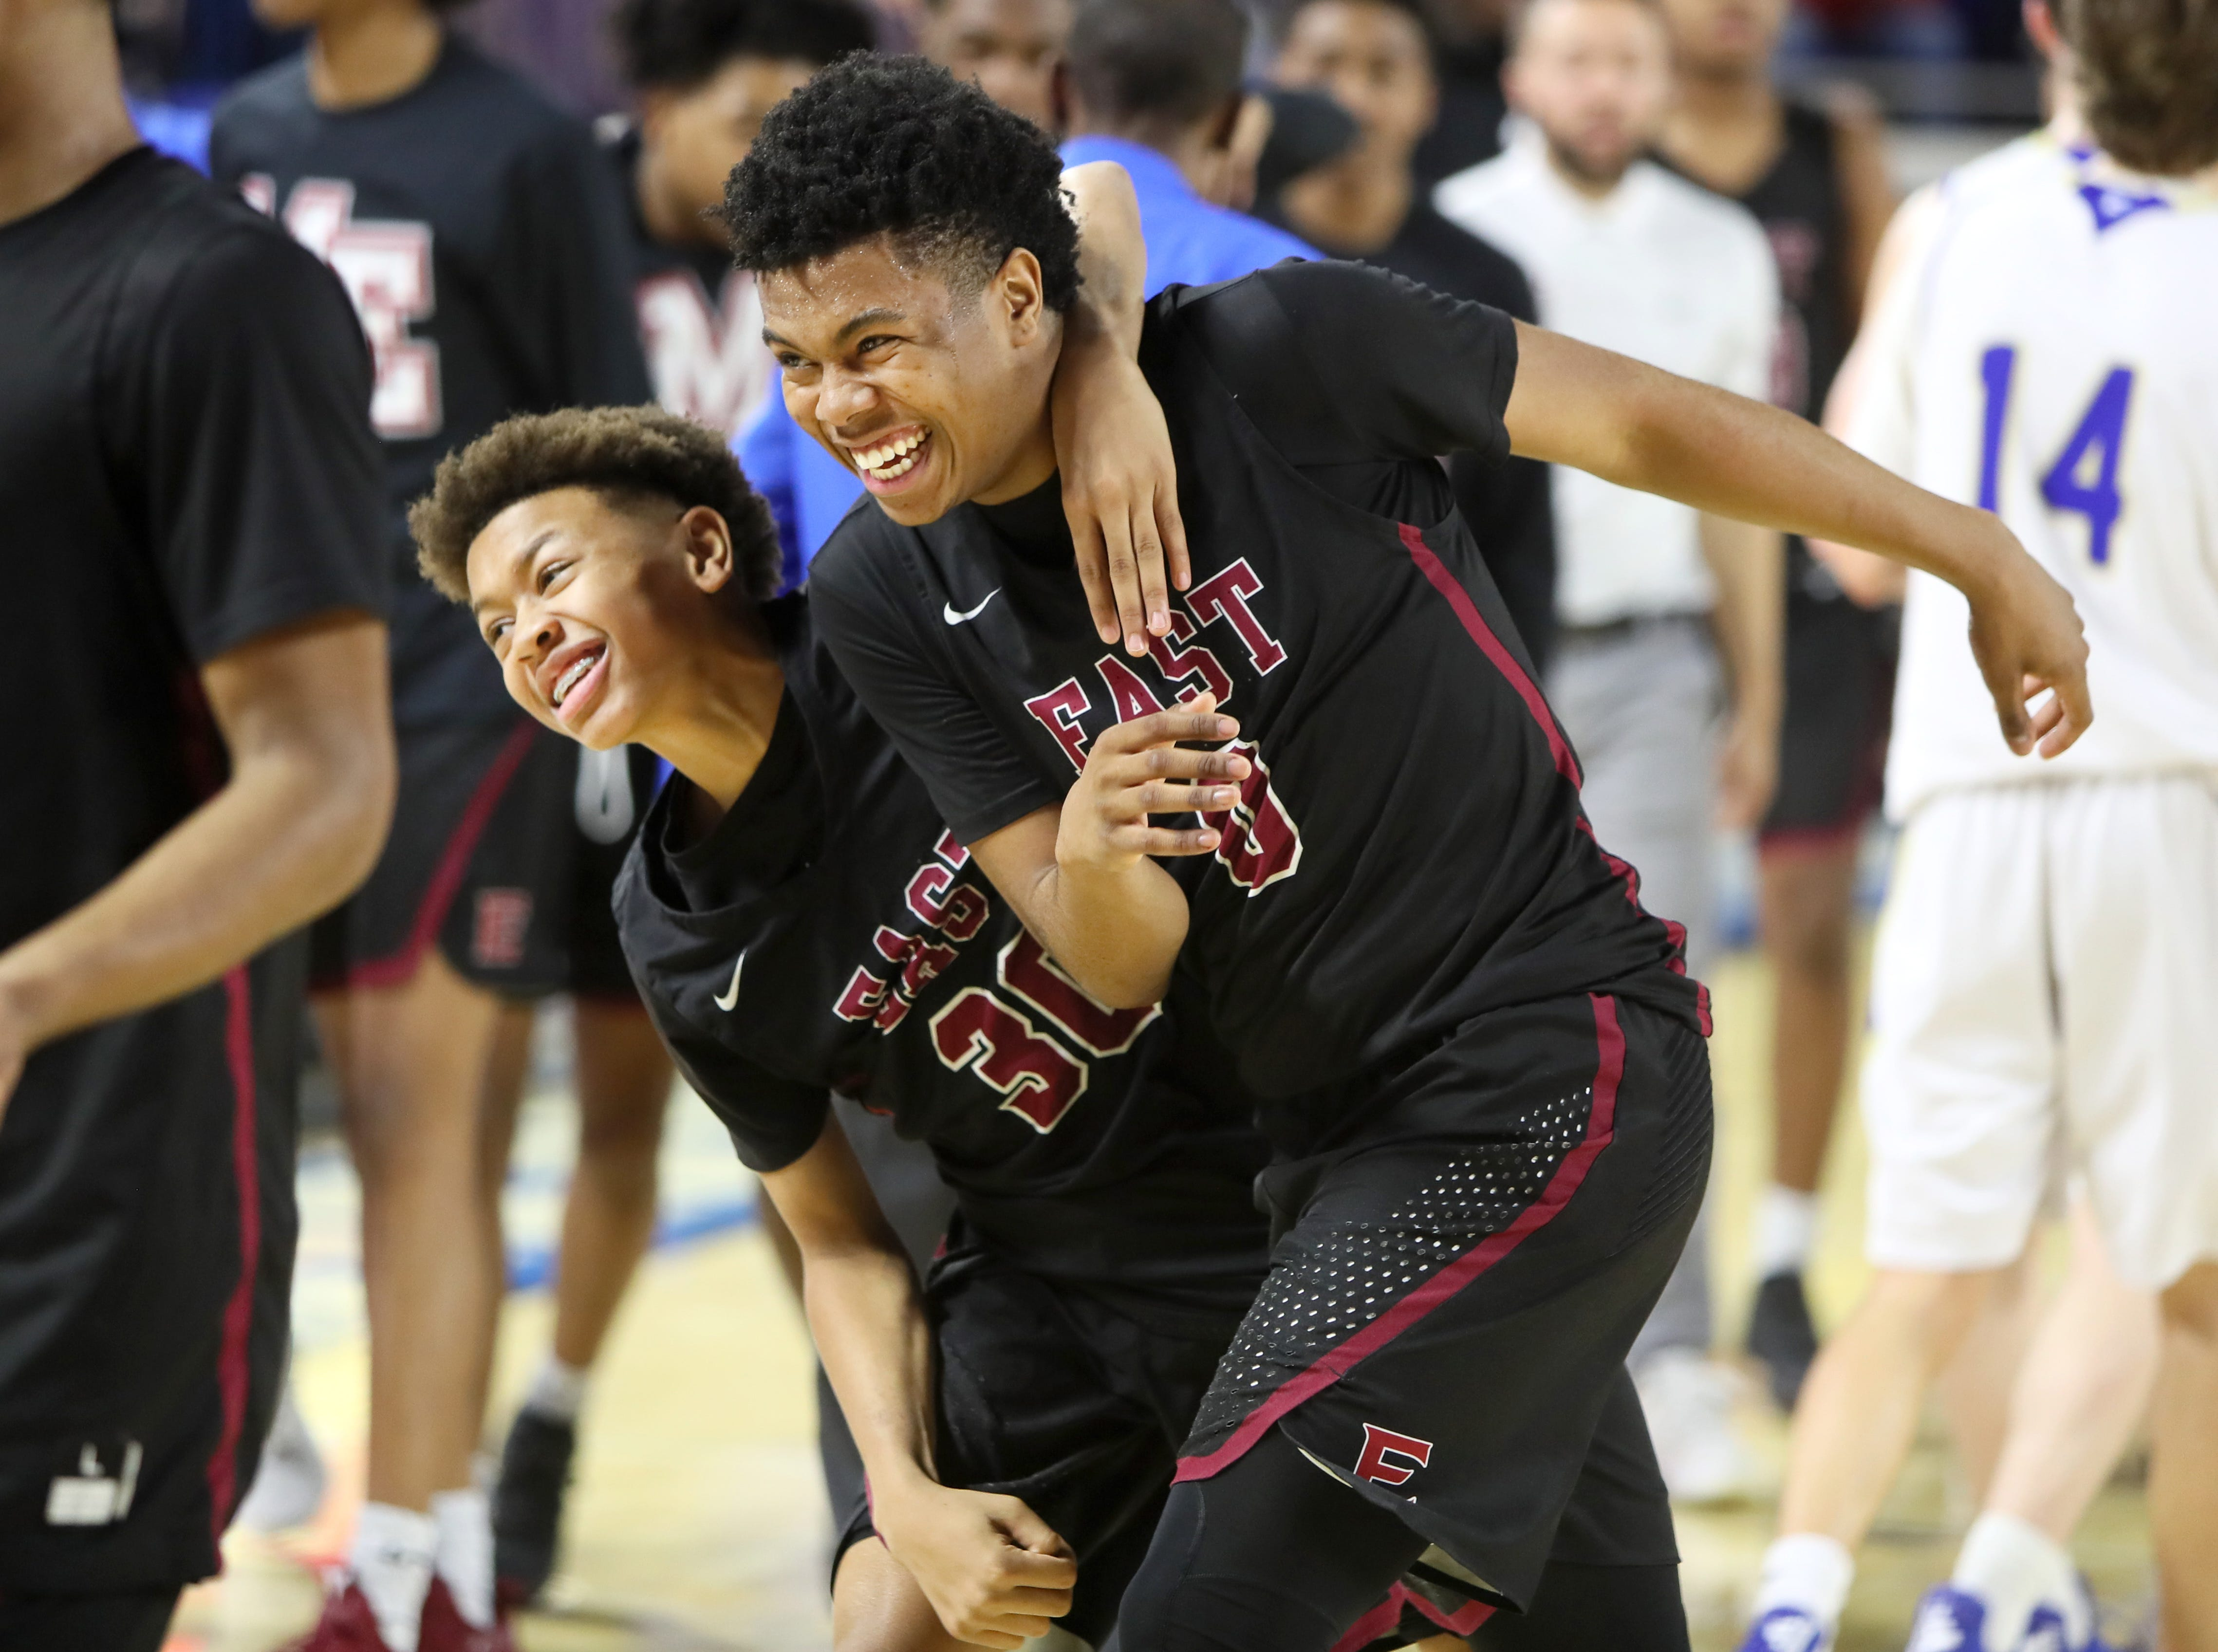 Memphis East's Terrence Jacobs, left, and Derrein Merriweather celebrate their 46-42 win over Brentwood during the Class AAA boys basketball state semifinal at the Murphy Center in Murfreesboro, Tenn. on Friday, March 15, 2019.